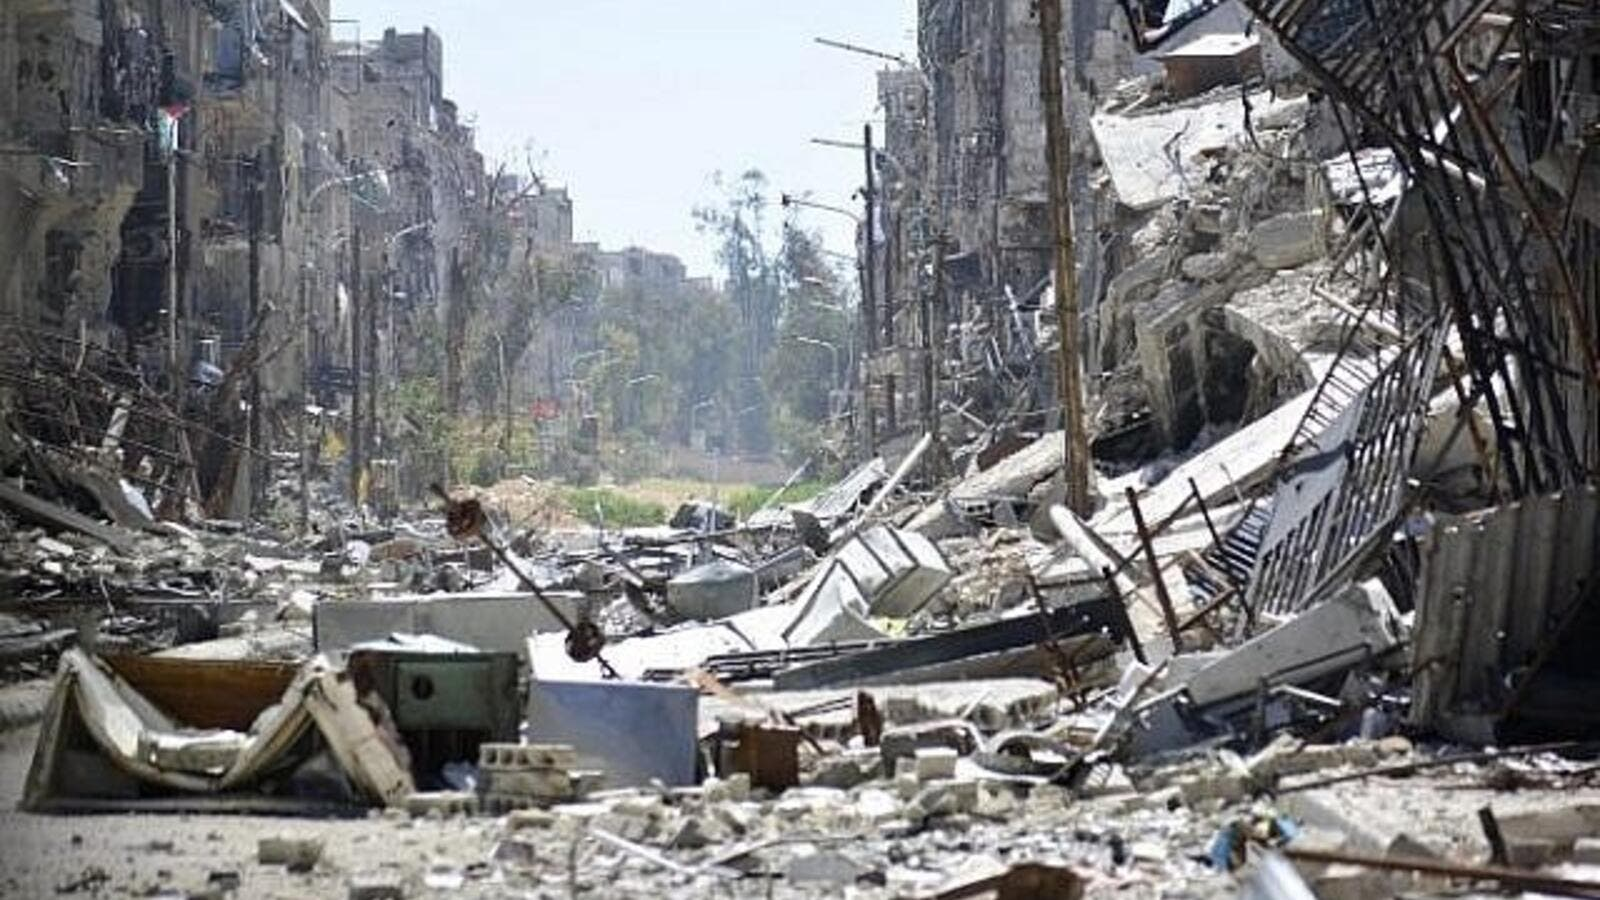 General view showing destruction in the Yarmouk Palestinian refugee camp outside the Syrian capital of Damascus. (AFP/ File Photo)